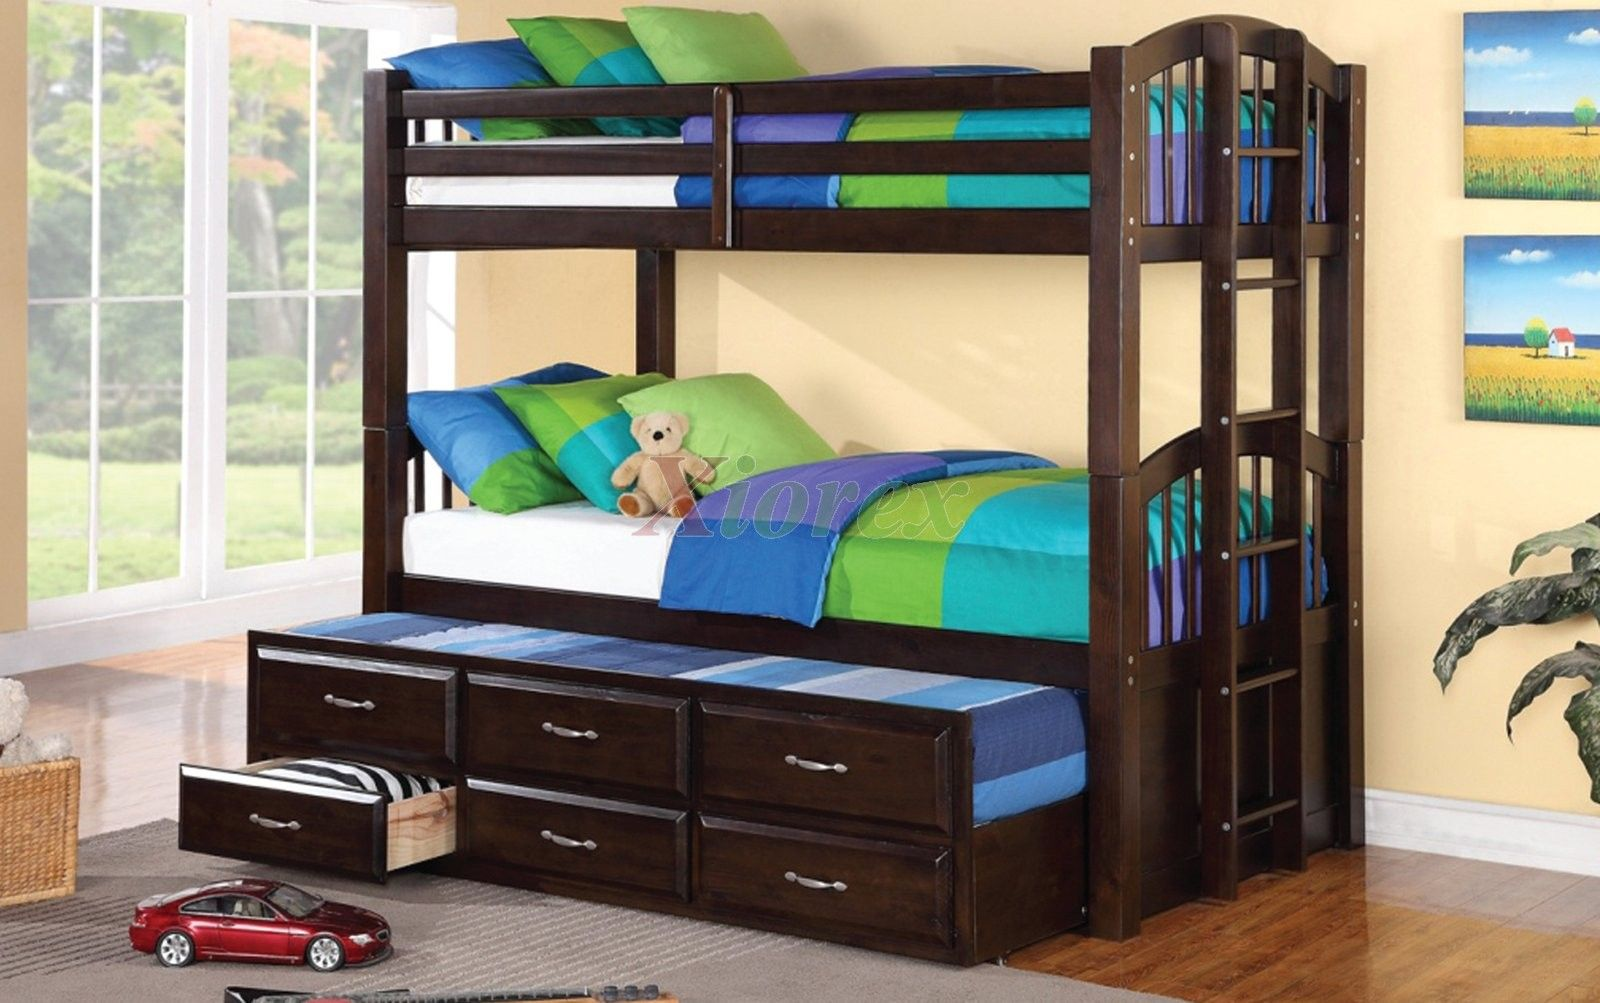 Acamar twin over twin bunk bed w bottom twin captain bed for Captains bed